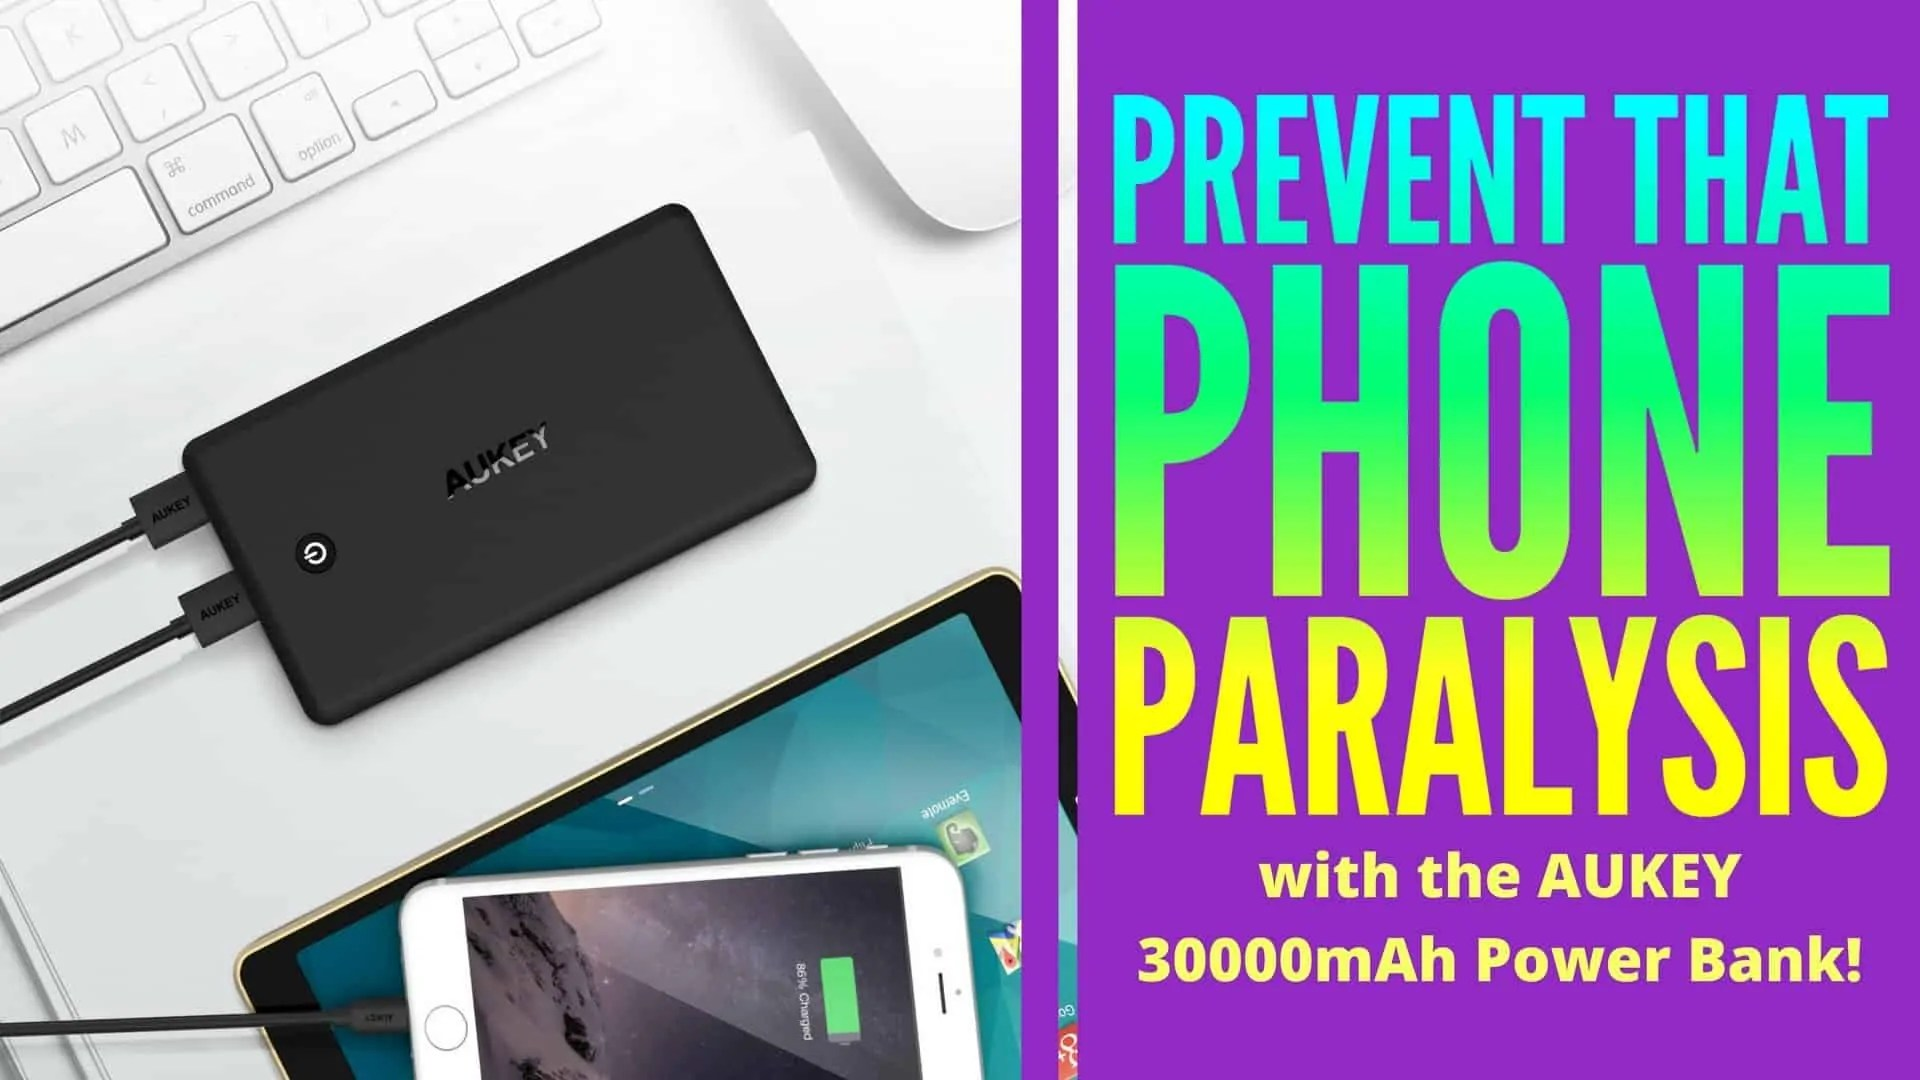 Prevent that Phone Paralysis with the AUKEY 30000mAh Power Bank! (Featured Image)